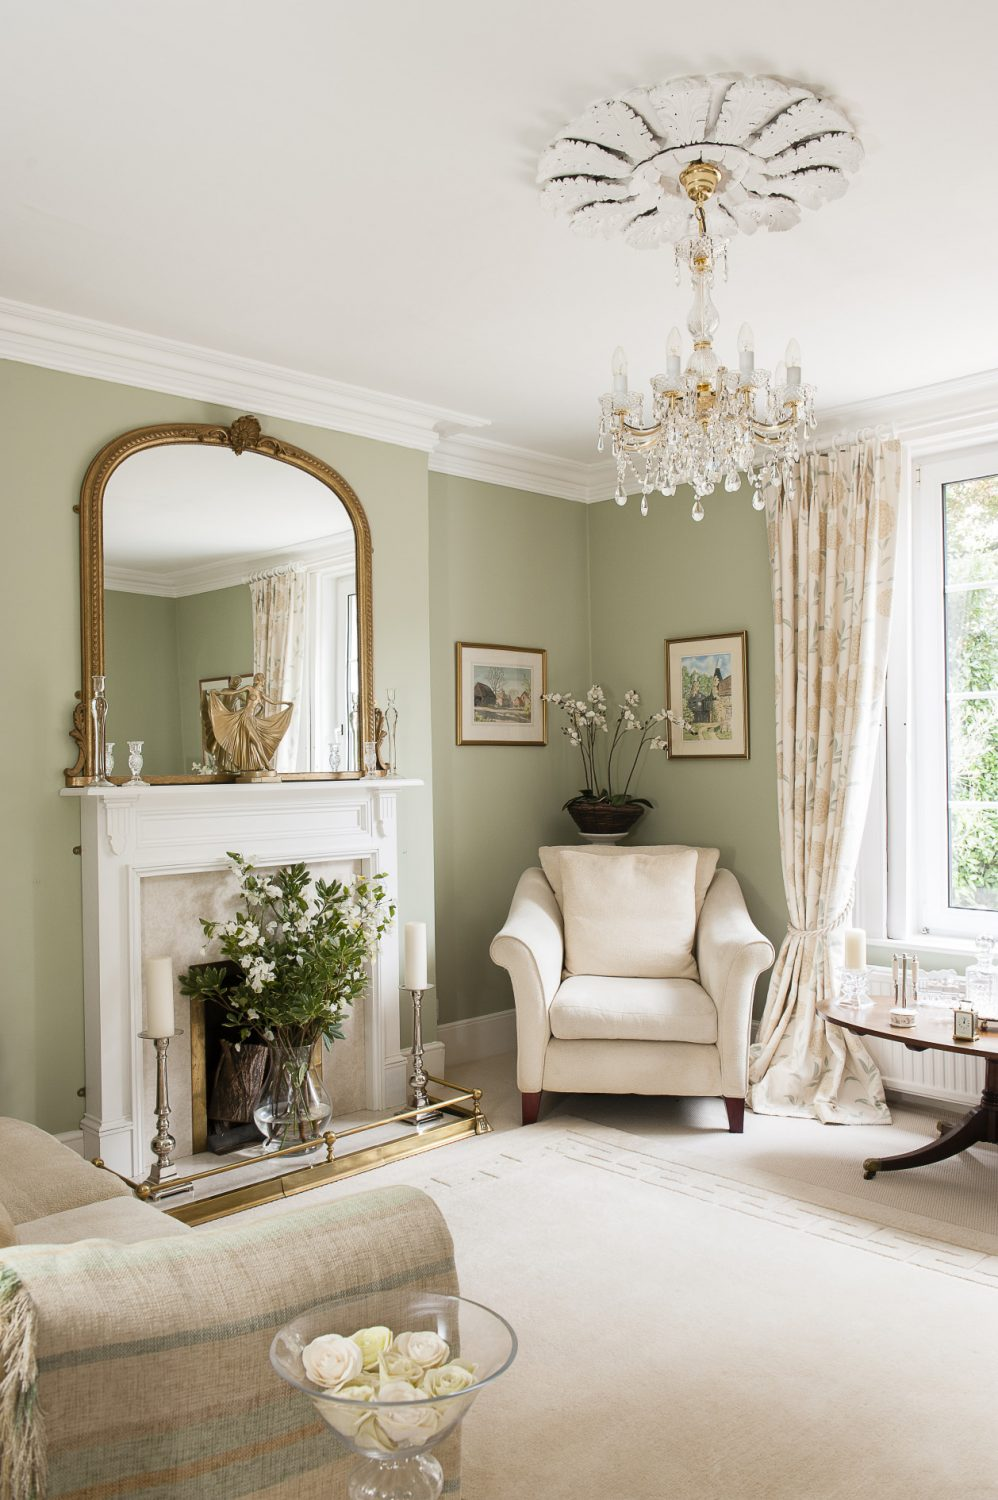 The sitting room with its beautiful light fitting